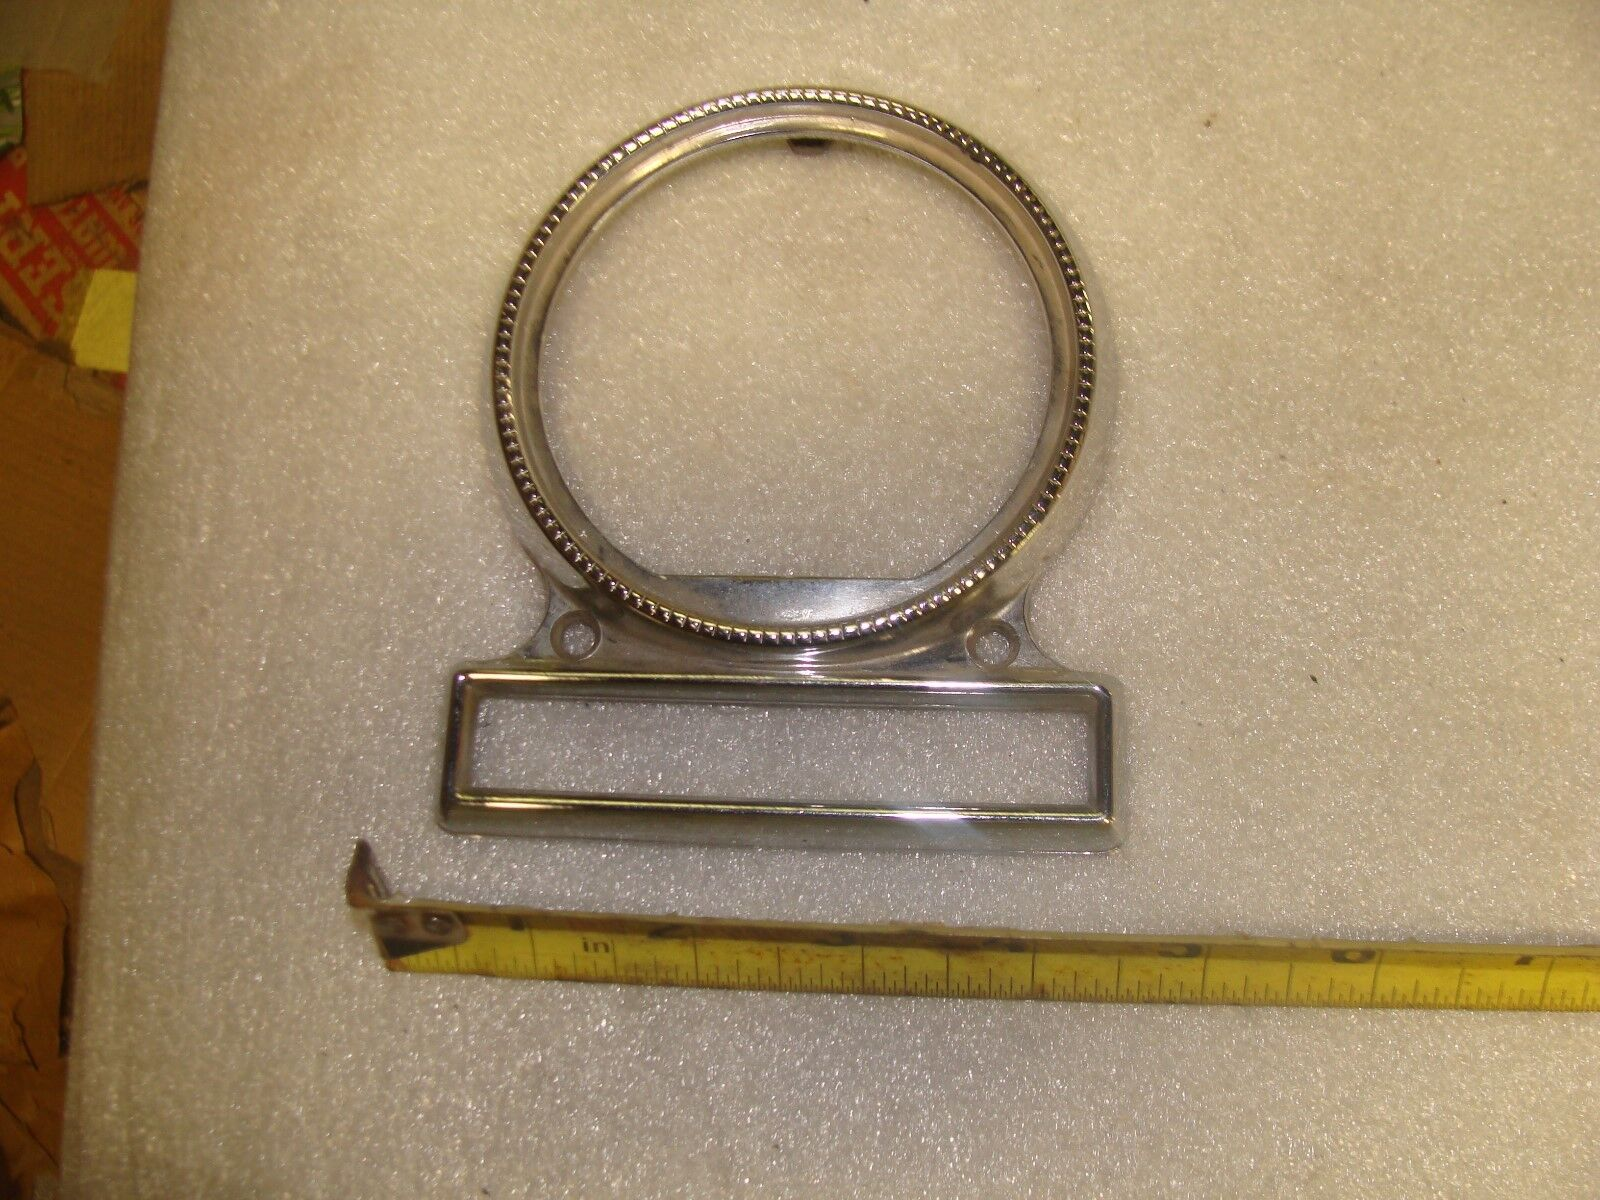 1955 Ford radio face plate.  A